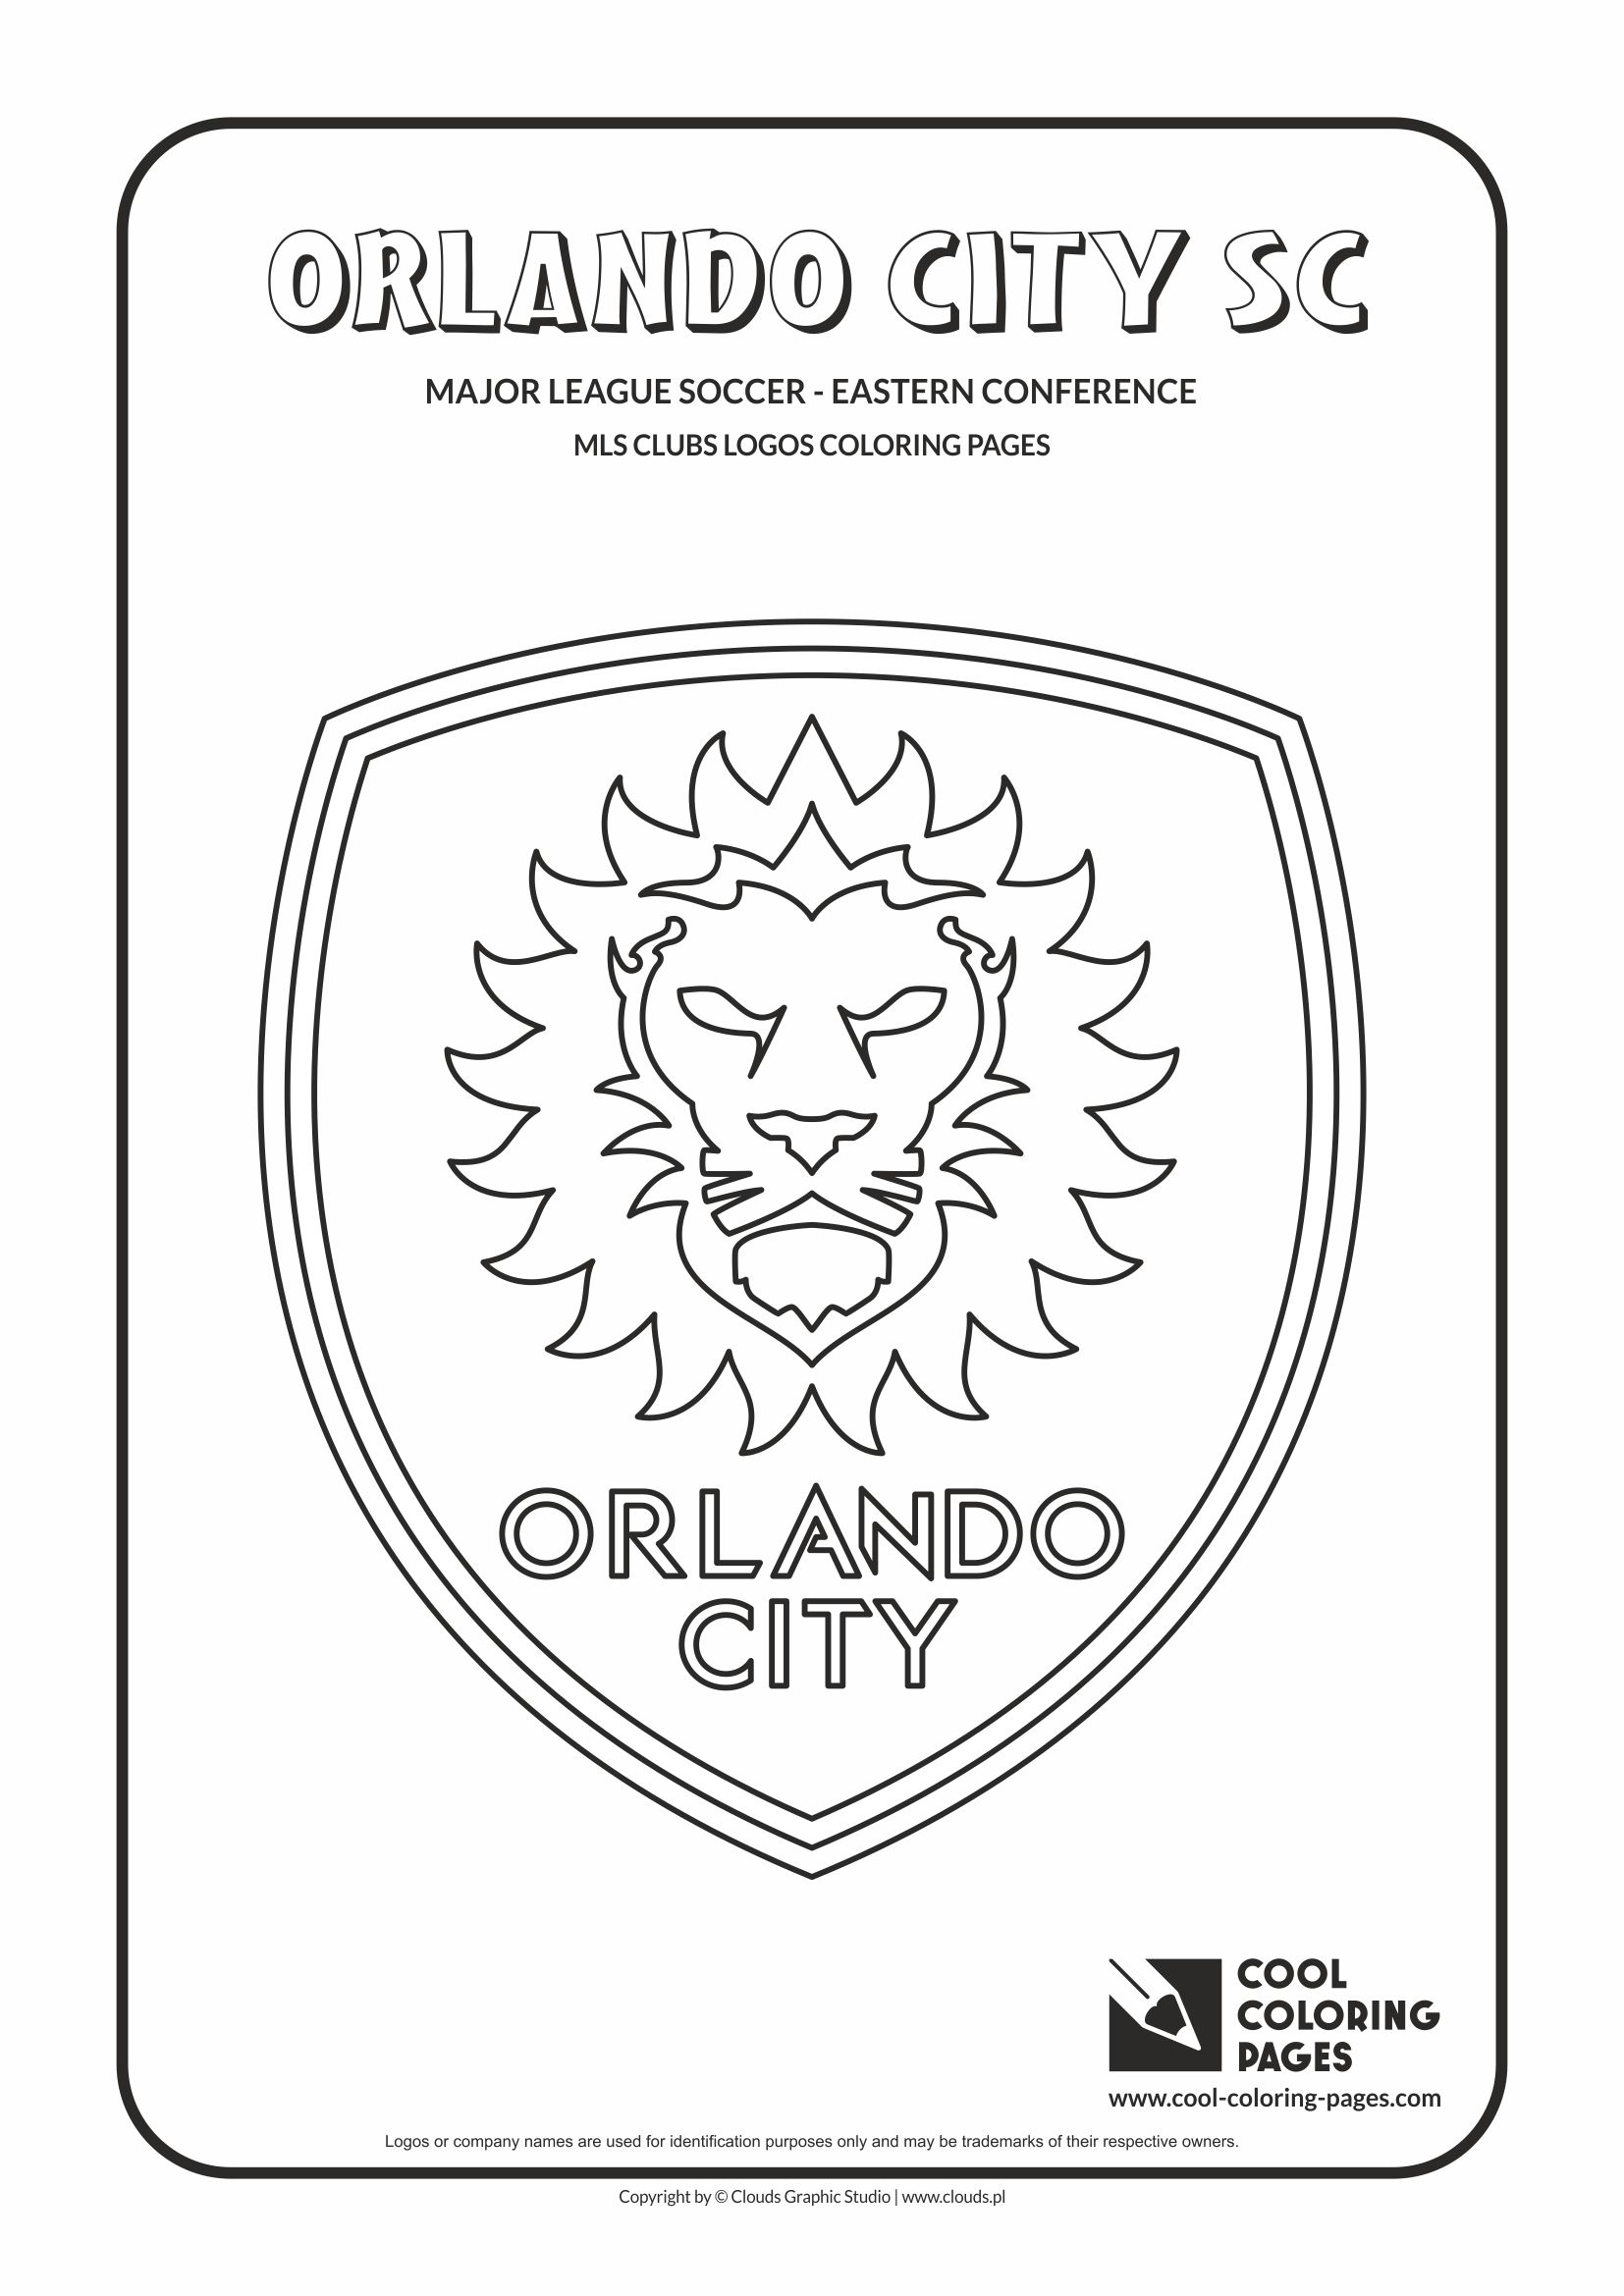 Cool Coloring Pages MLS soccer